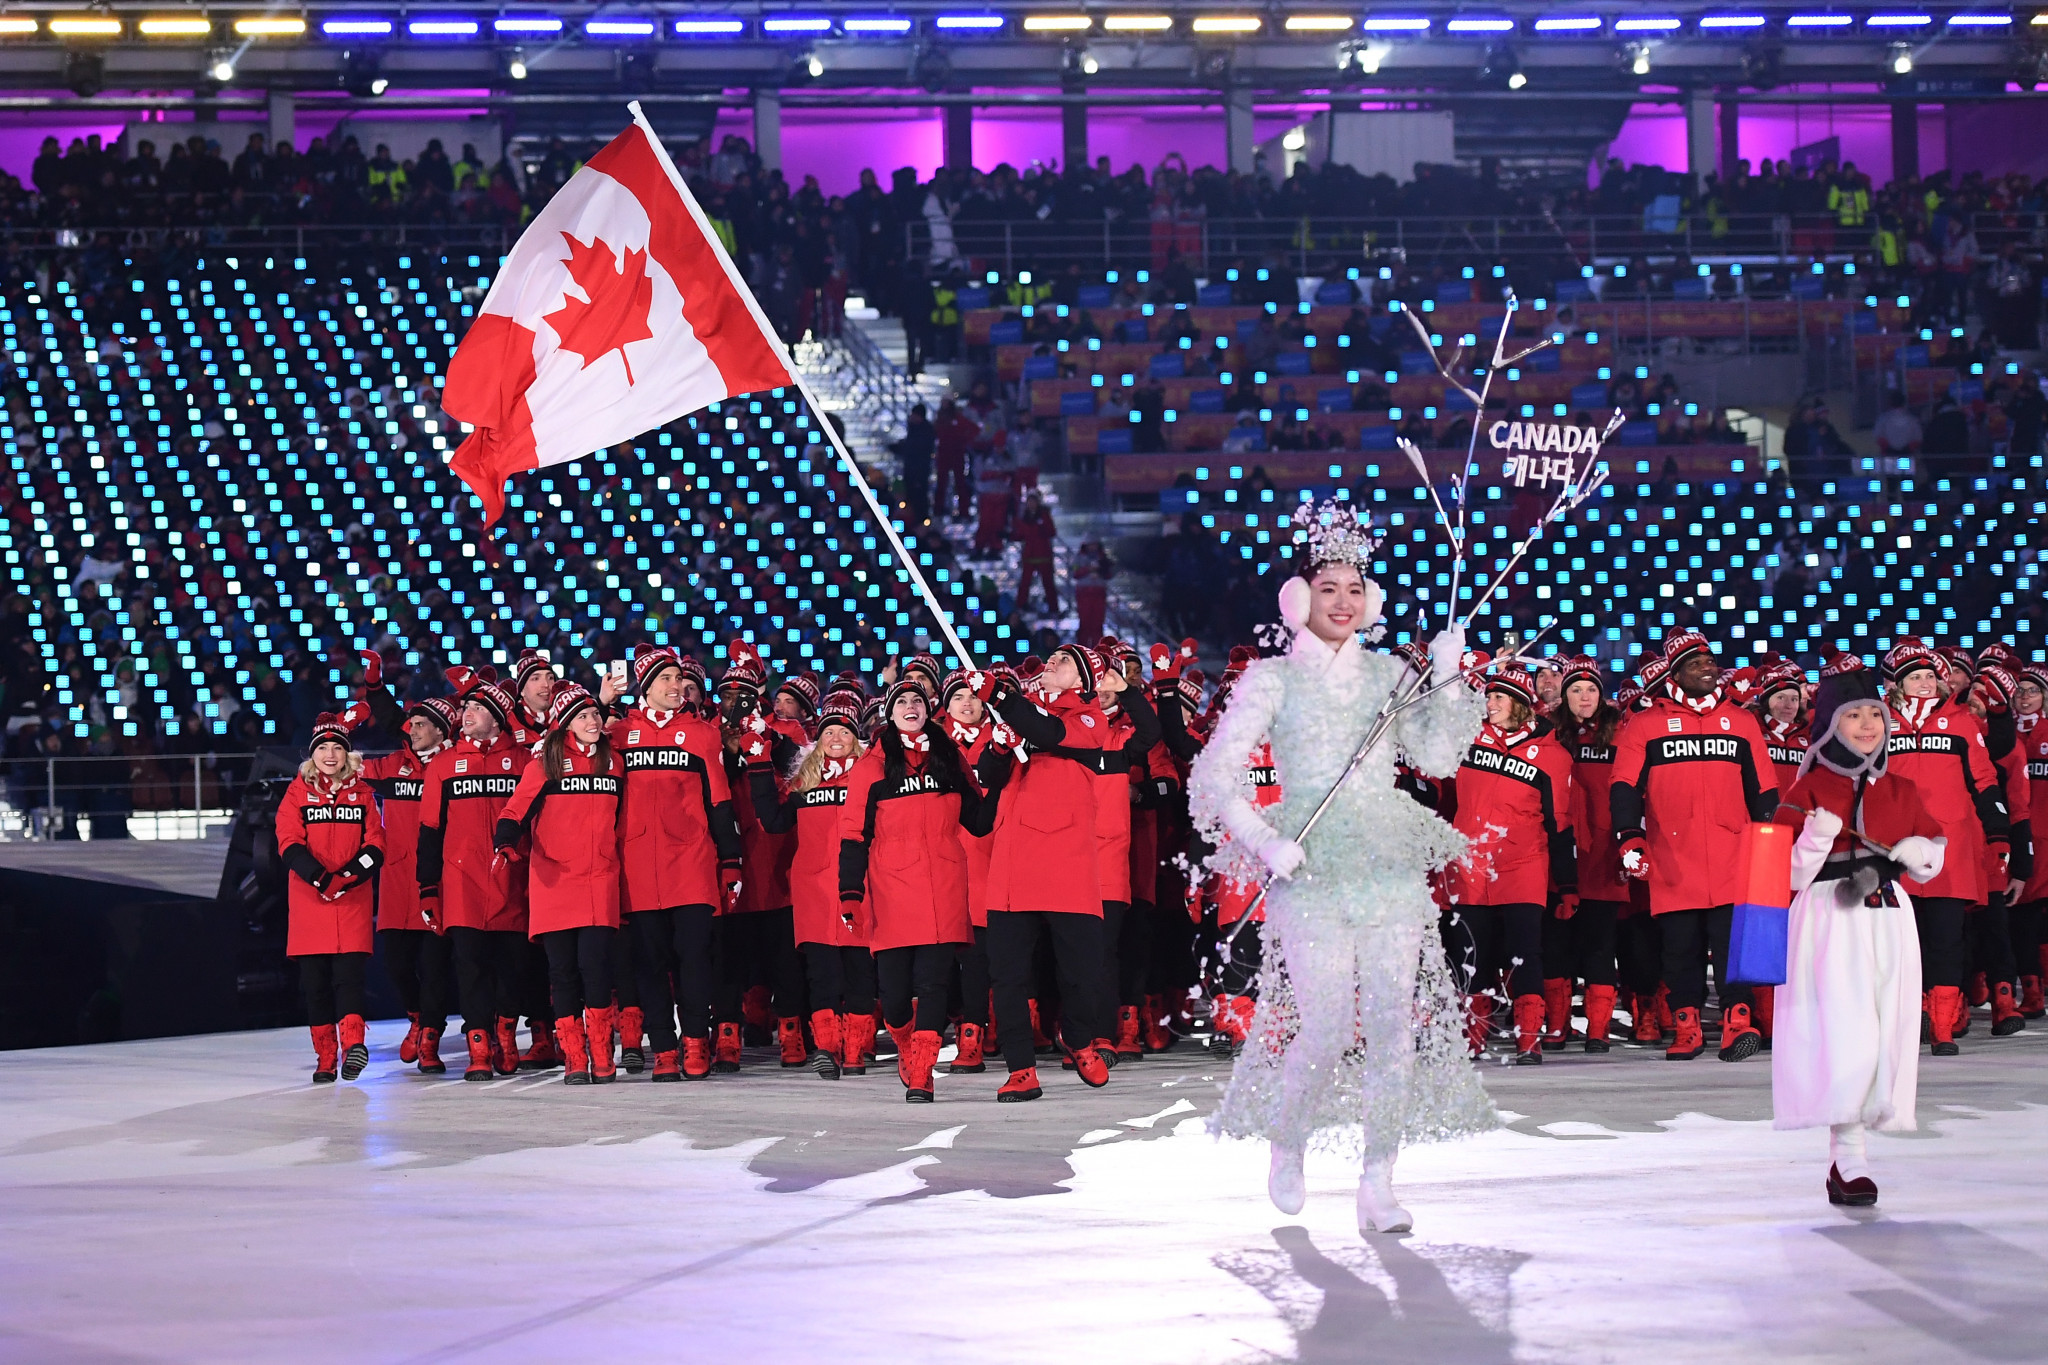 Canada achieved its best medal total at a Winter Olympics at Pyeongchang 2018 ©Getty Images